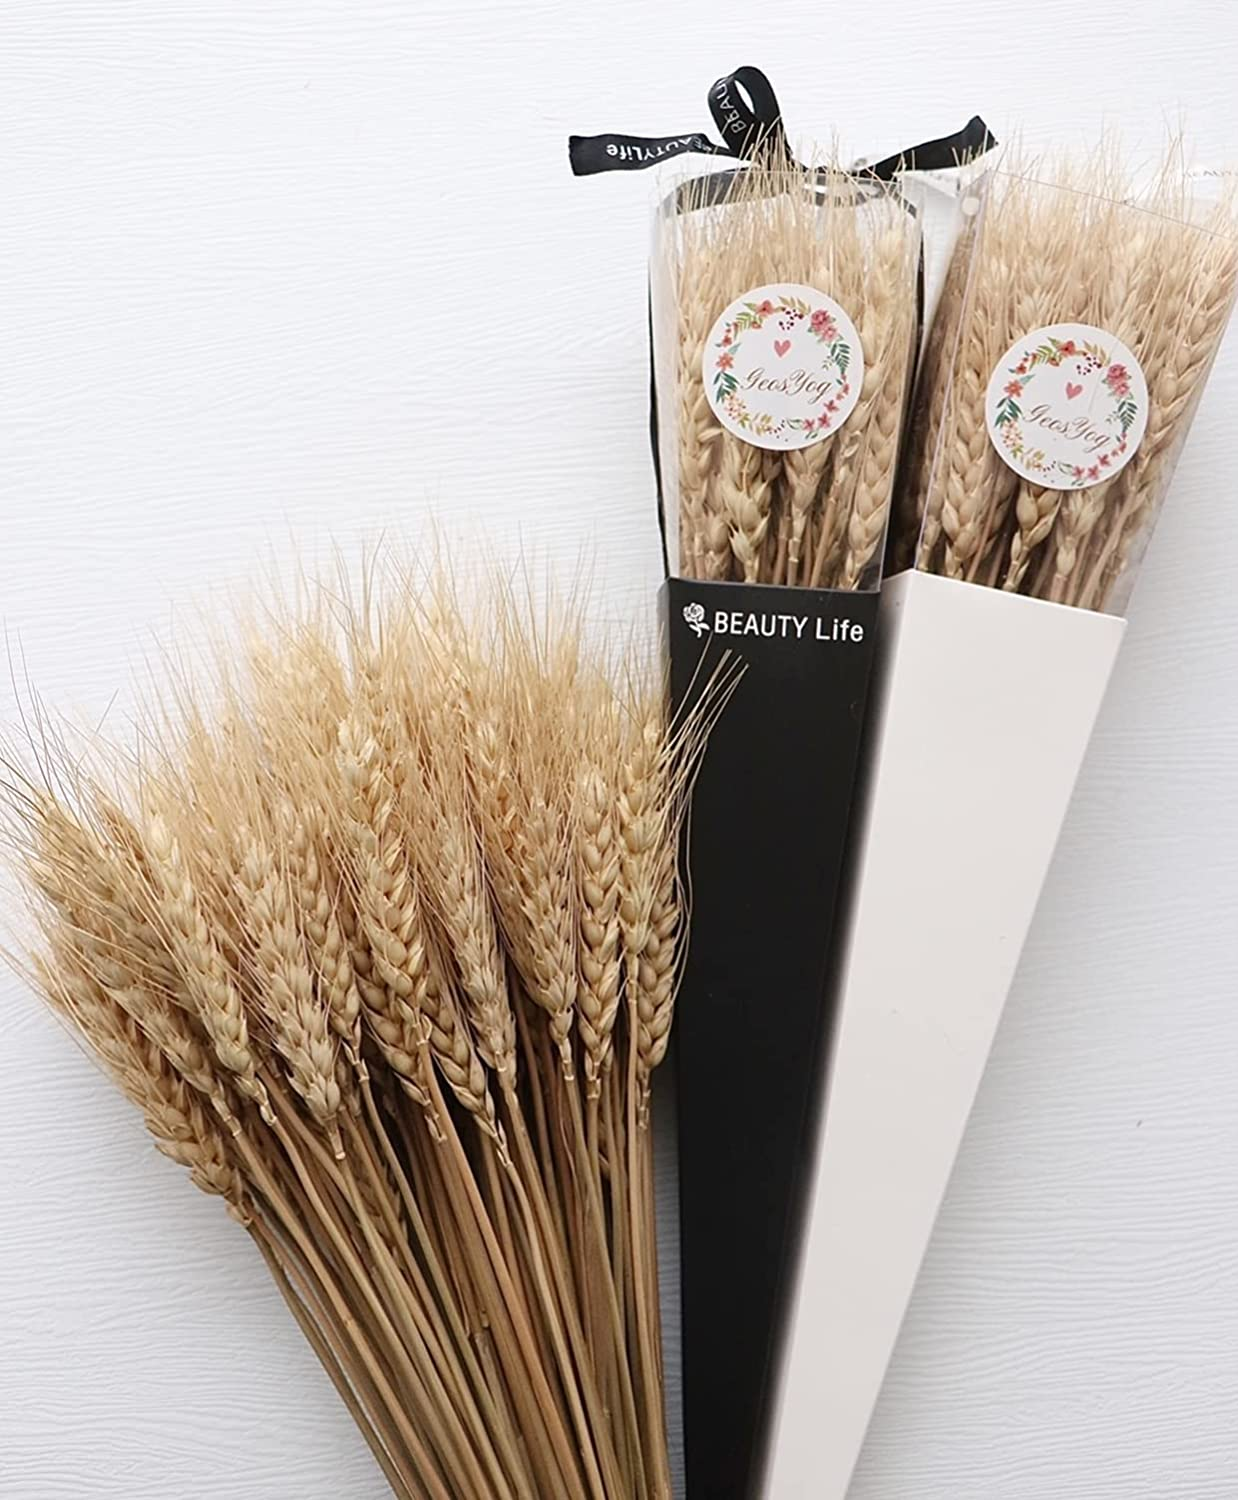 Dried Wheat Stalks, 100 Stems Natural Wheat Sheaves for Home Kitchen Wedding Decor, Wheat Bouquet Bundle Flower (11.5~12 in)